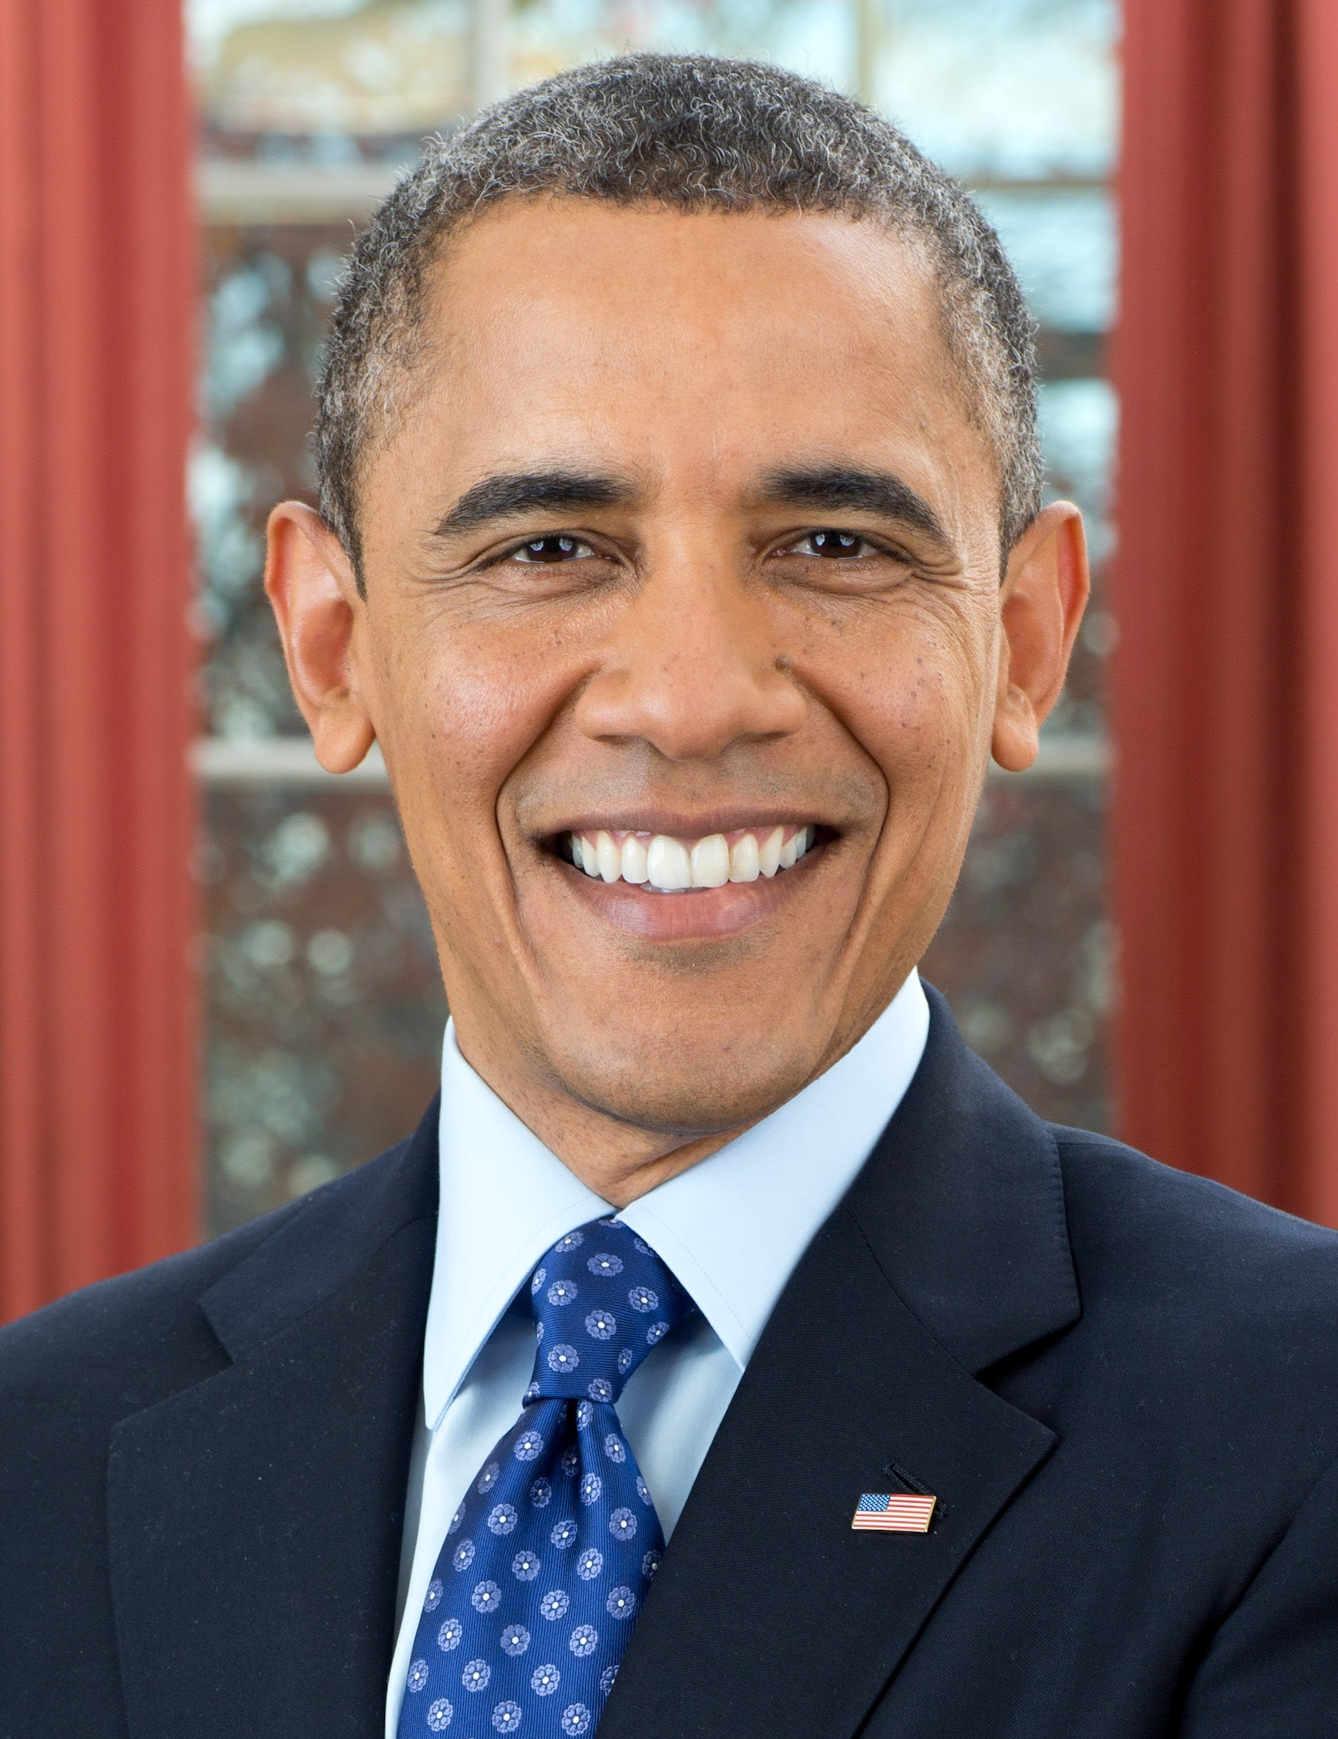 File President Barack Obama 2012 Portrait Crop Jpg